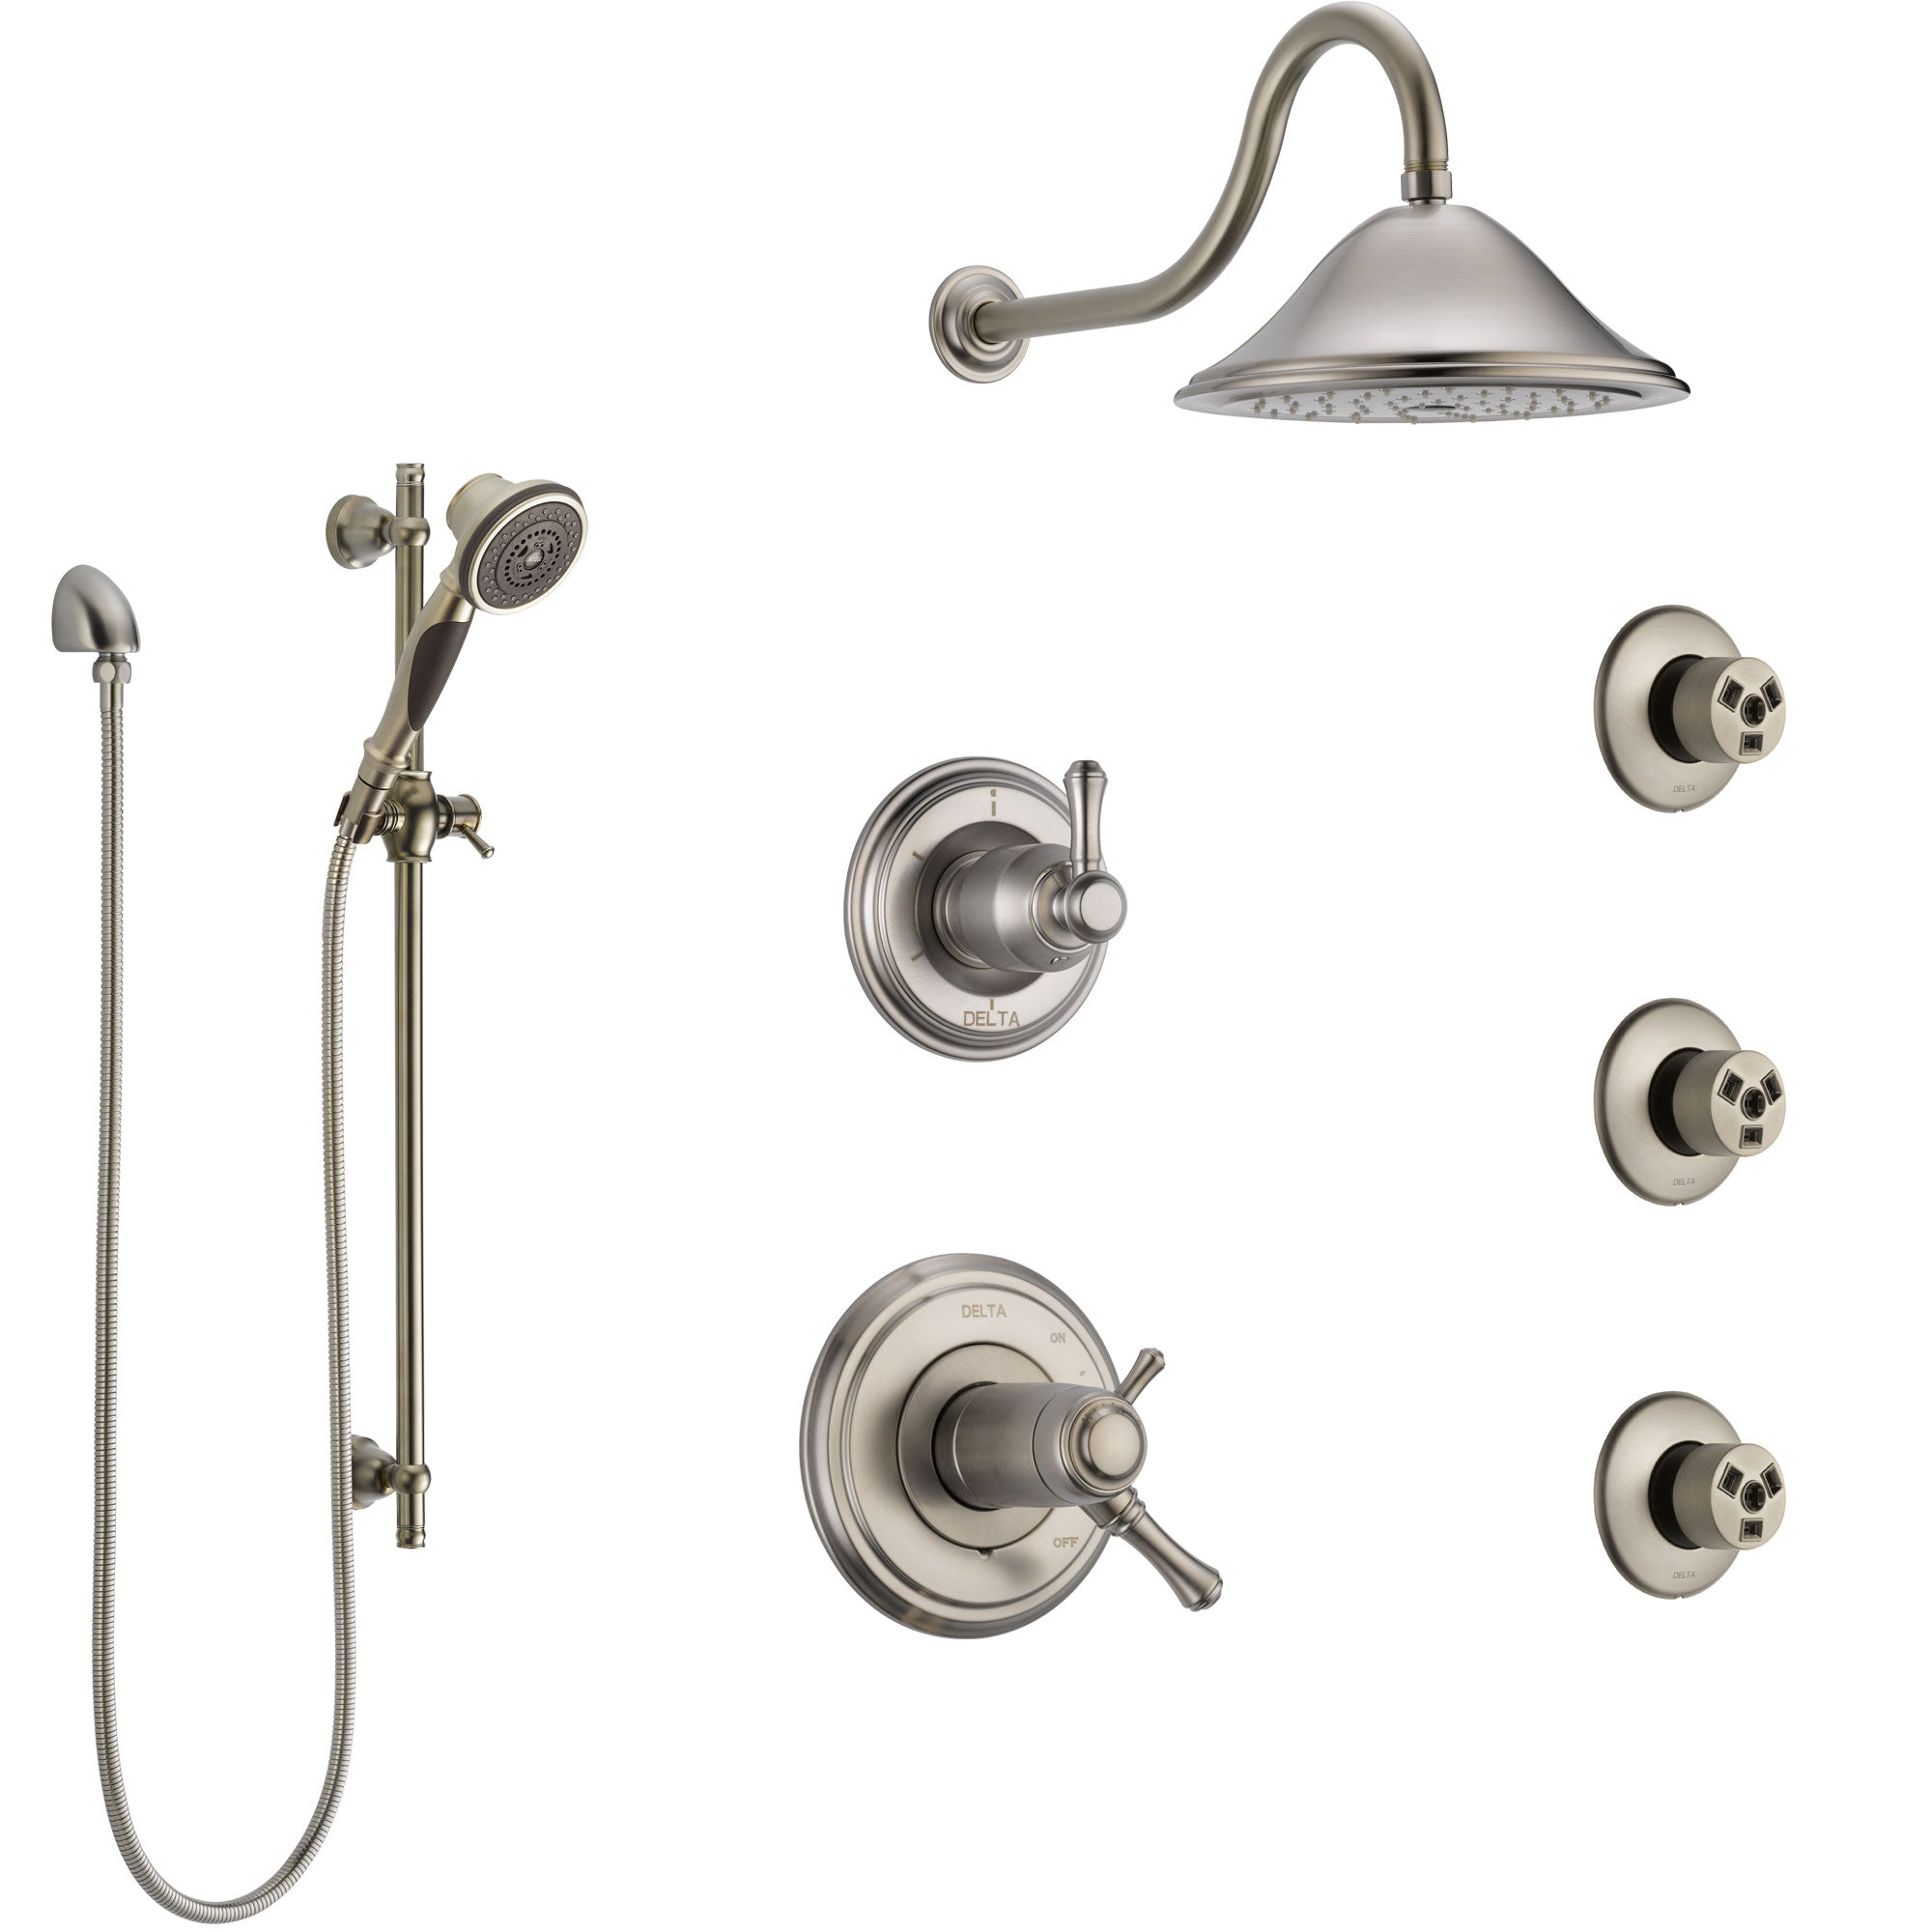 Delta Cassidy Dual Thermostatic Control Stainless Steel Finish Shower System, Diverter, Showerhead, 3 Body Sprays, and Hand Shower SS17T2971SS4